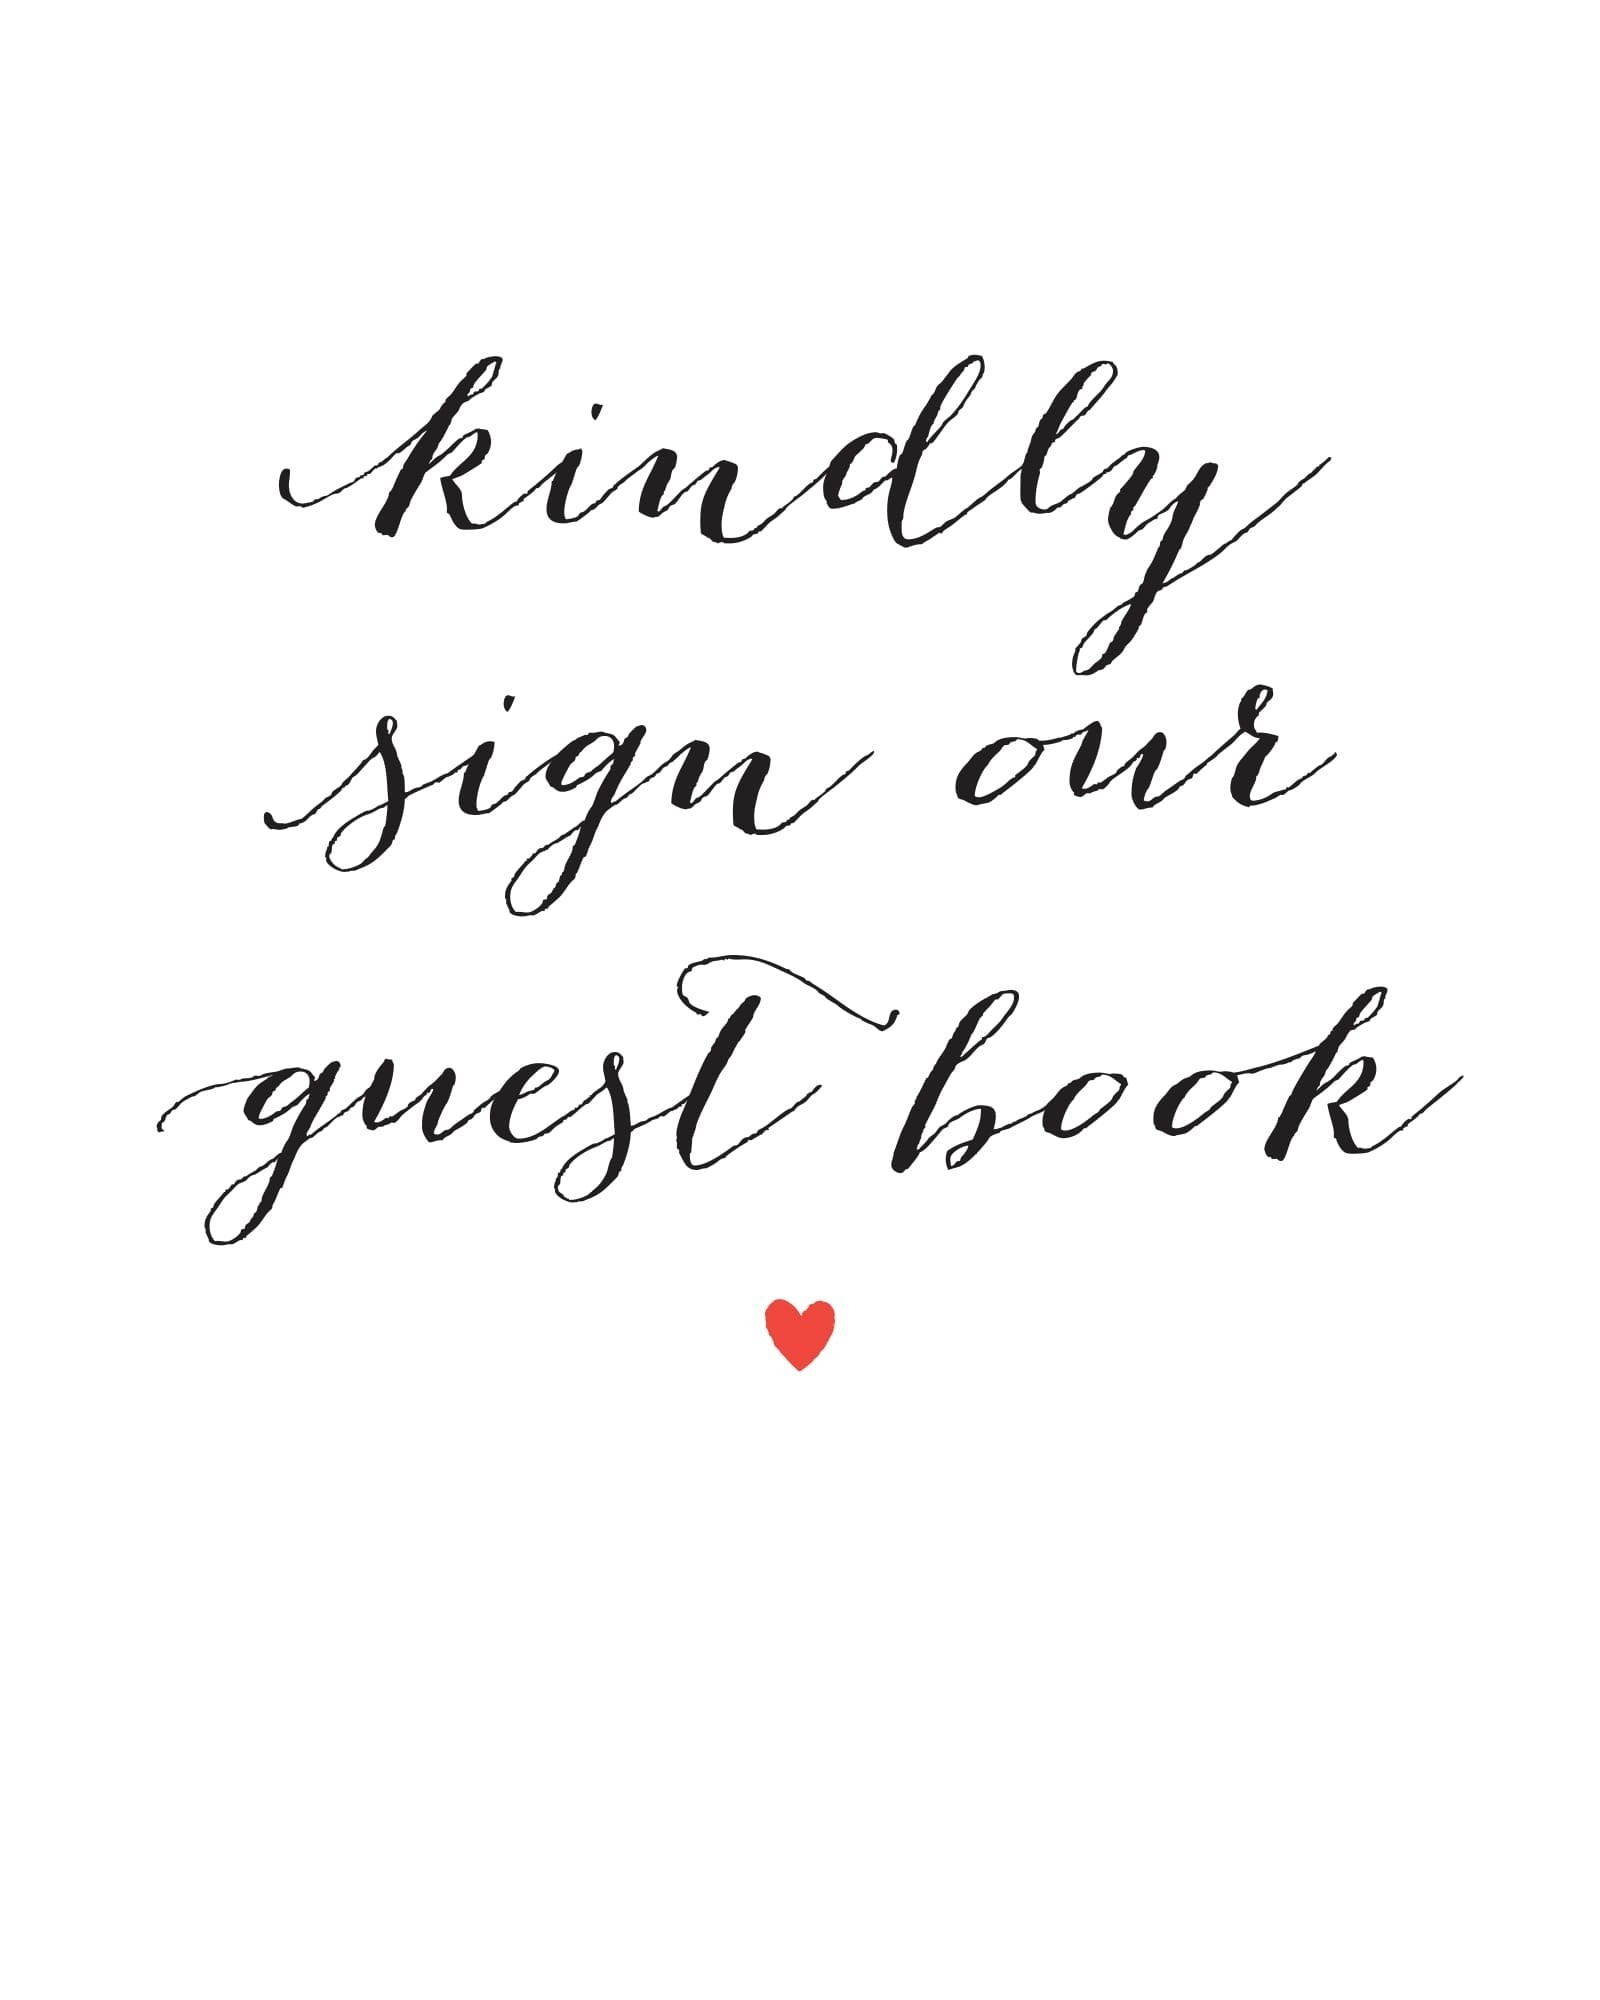 Wedding Signs Printables And Diy Templates Of Signs - Free Printable Sign Templates